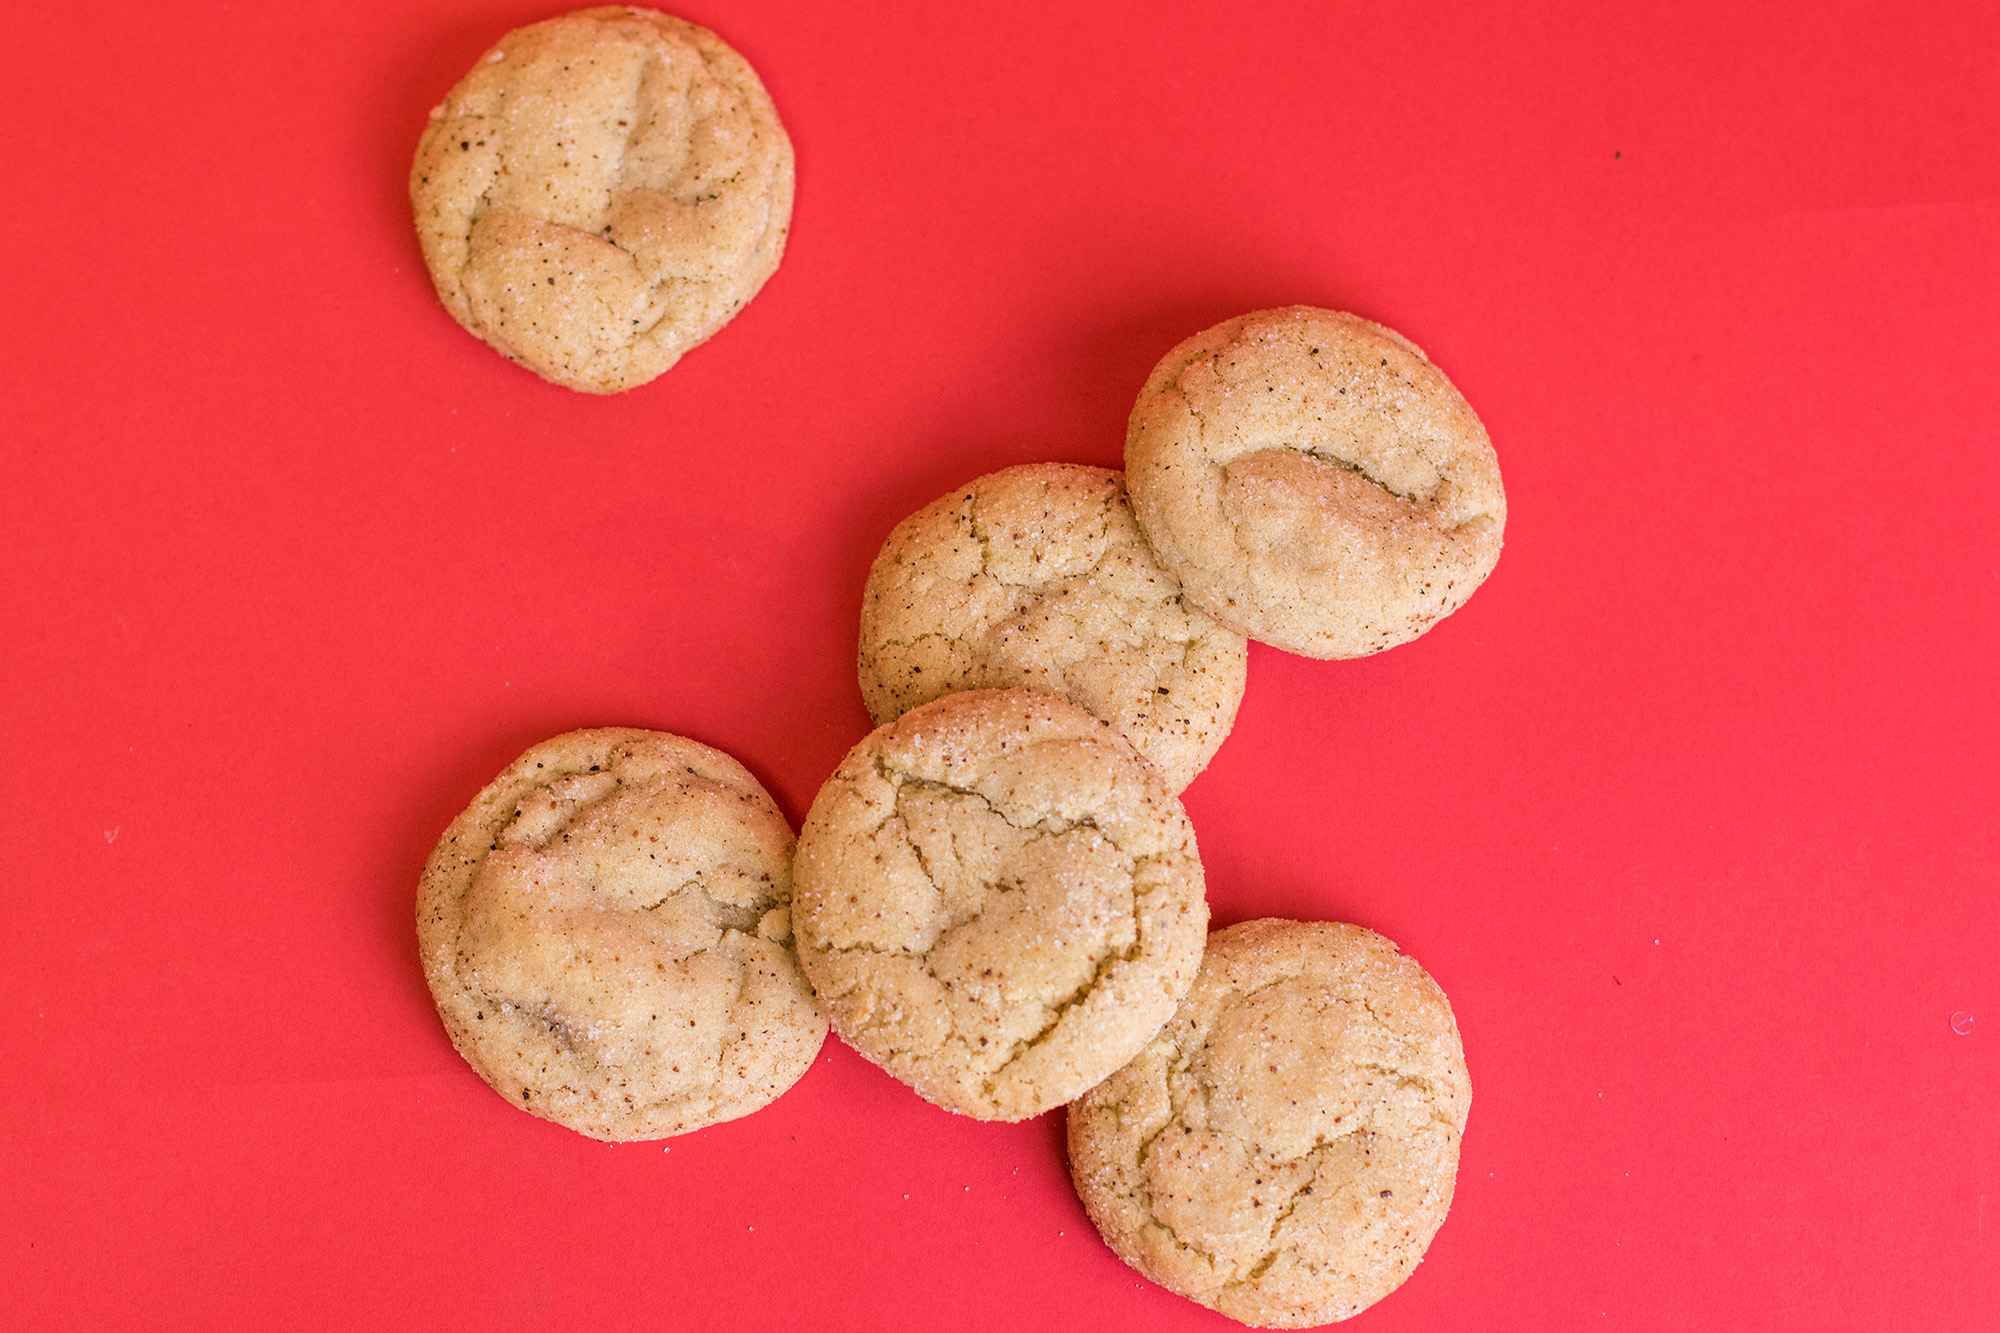 Egg Nog cookies spread out on a red background.